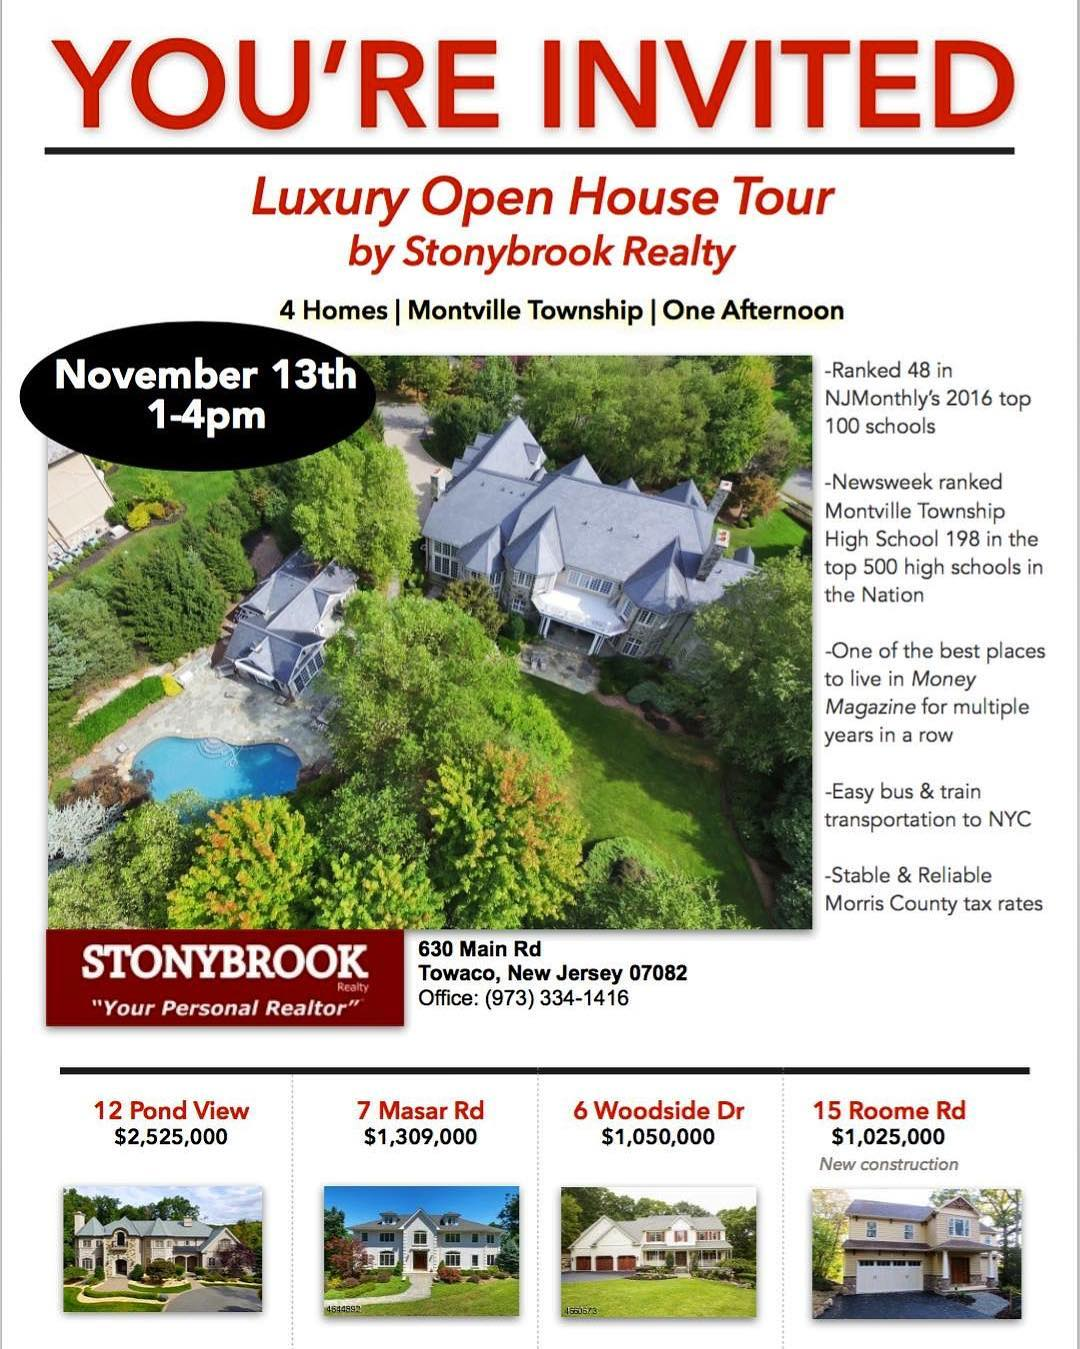 TODAY! Visit us at 7 Masar Rd luxury openhouse montville